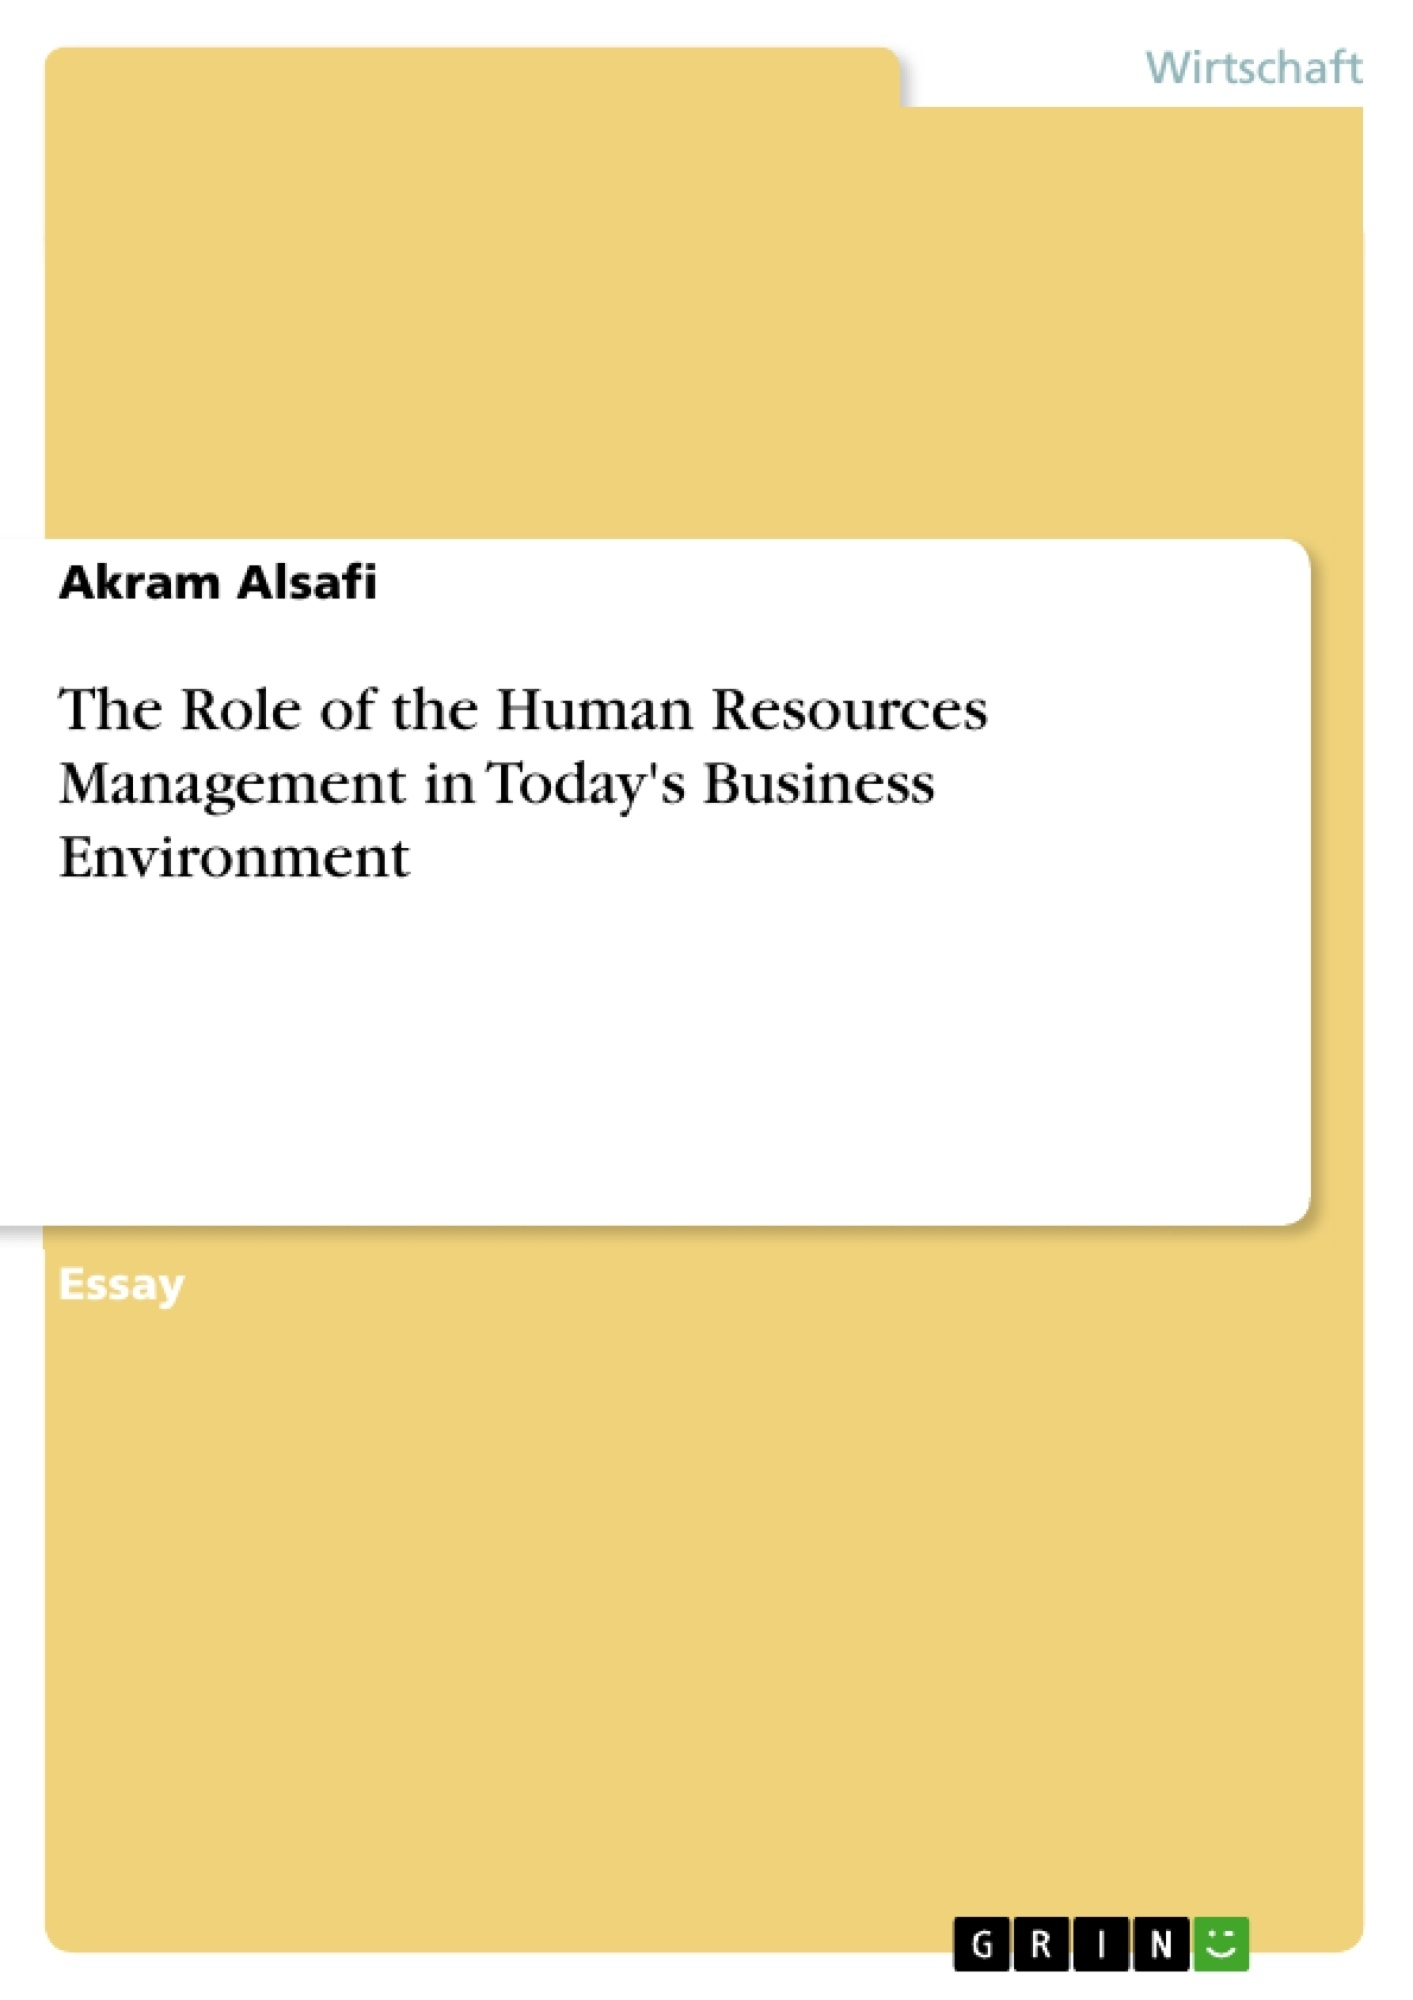 Titel: The Role of the Human Resources Management in Today's Business Environment